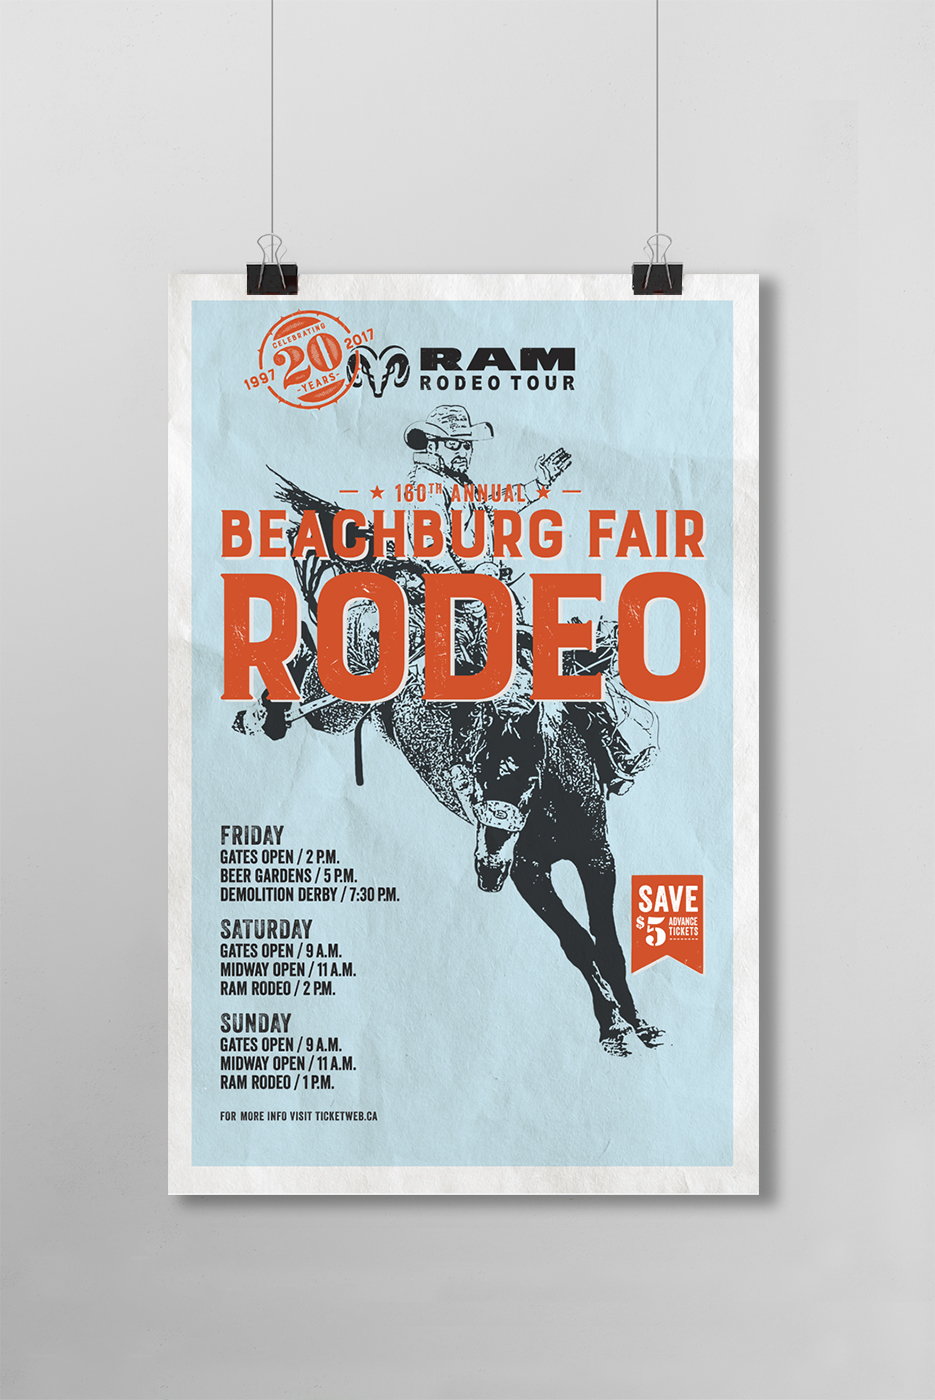 Beachburg Fair 160th Annual rodeo poster design featuring a man riding a bucking bronco.